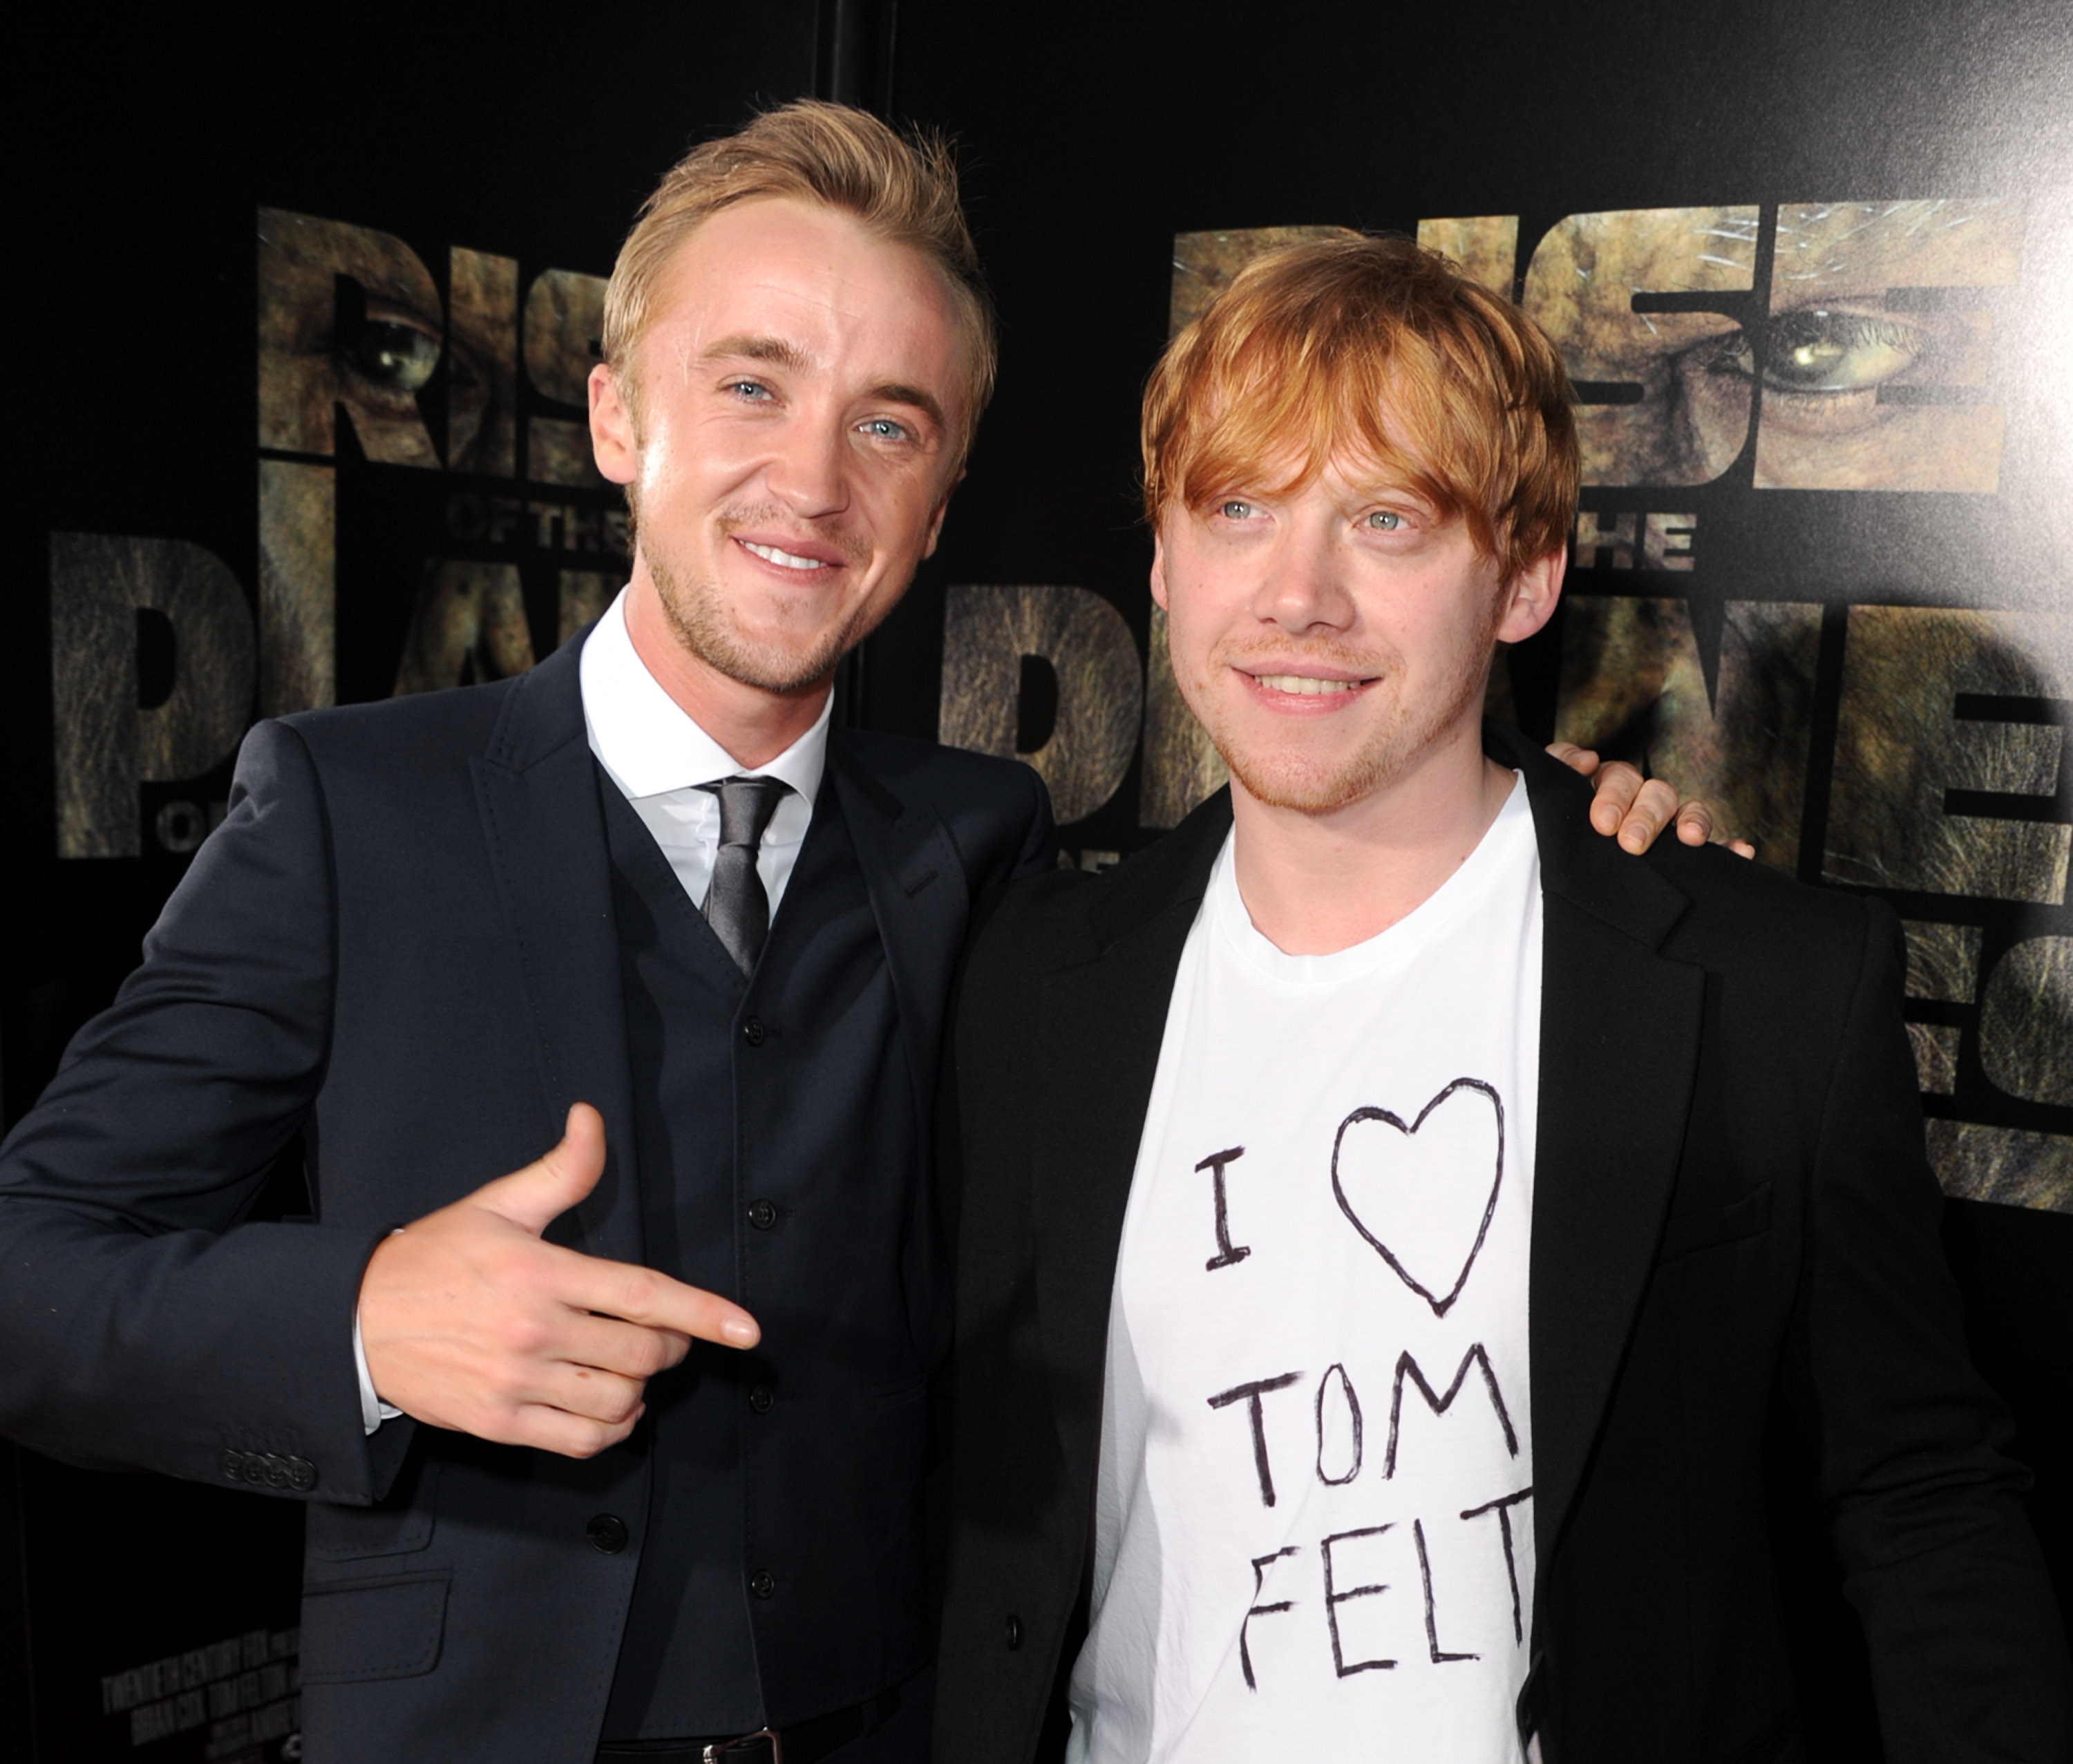 Rupert Grint of Harry Potter makes love in front of his parents 28.04.2010 37